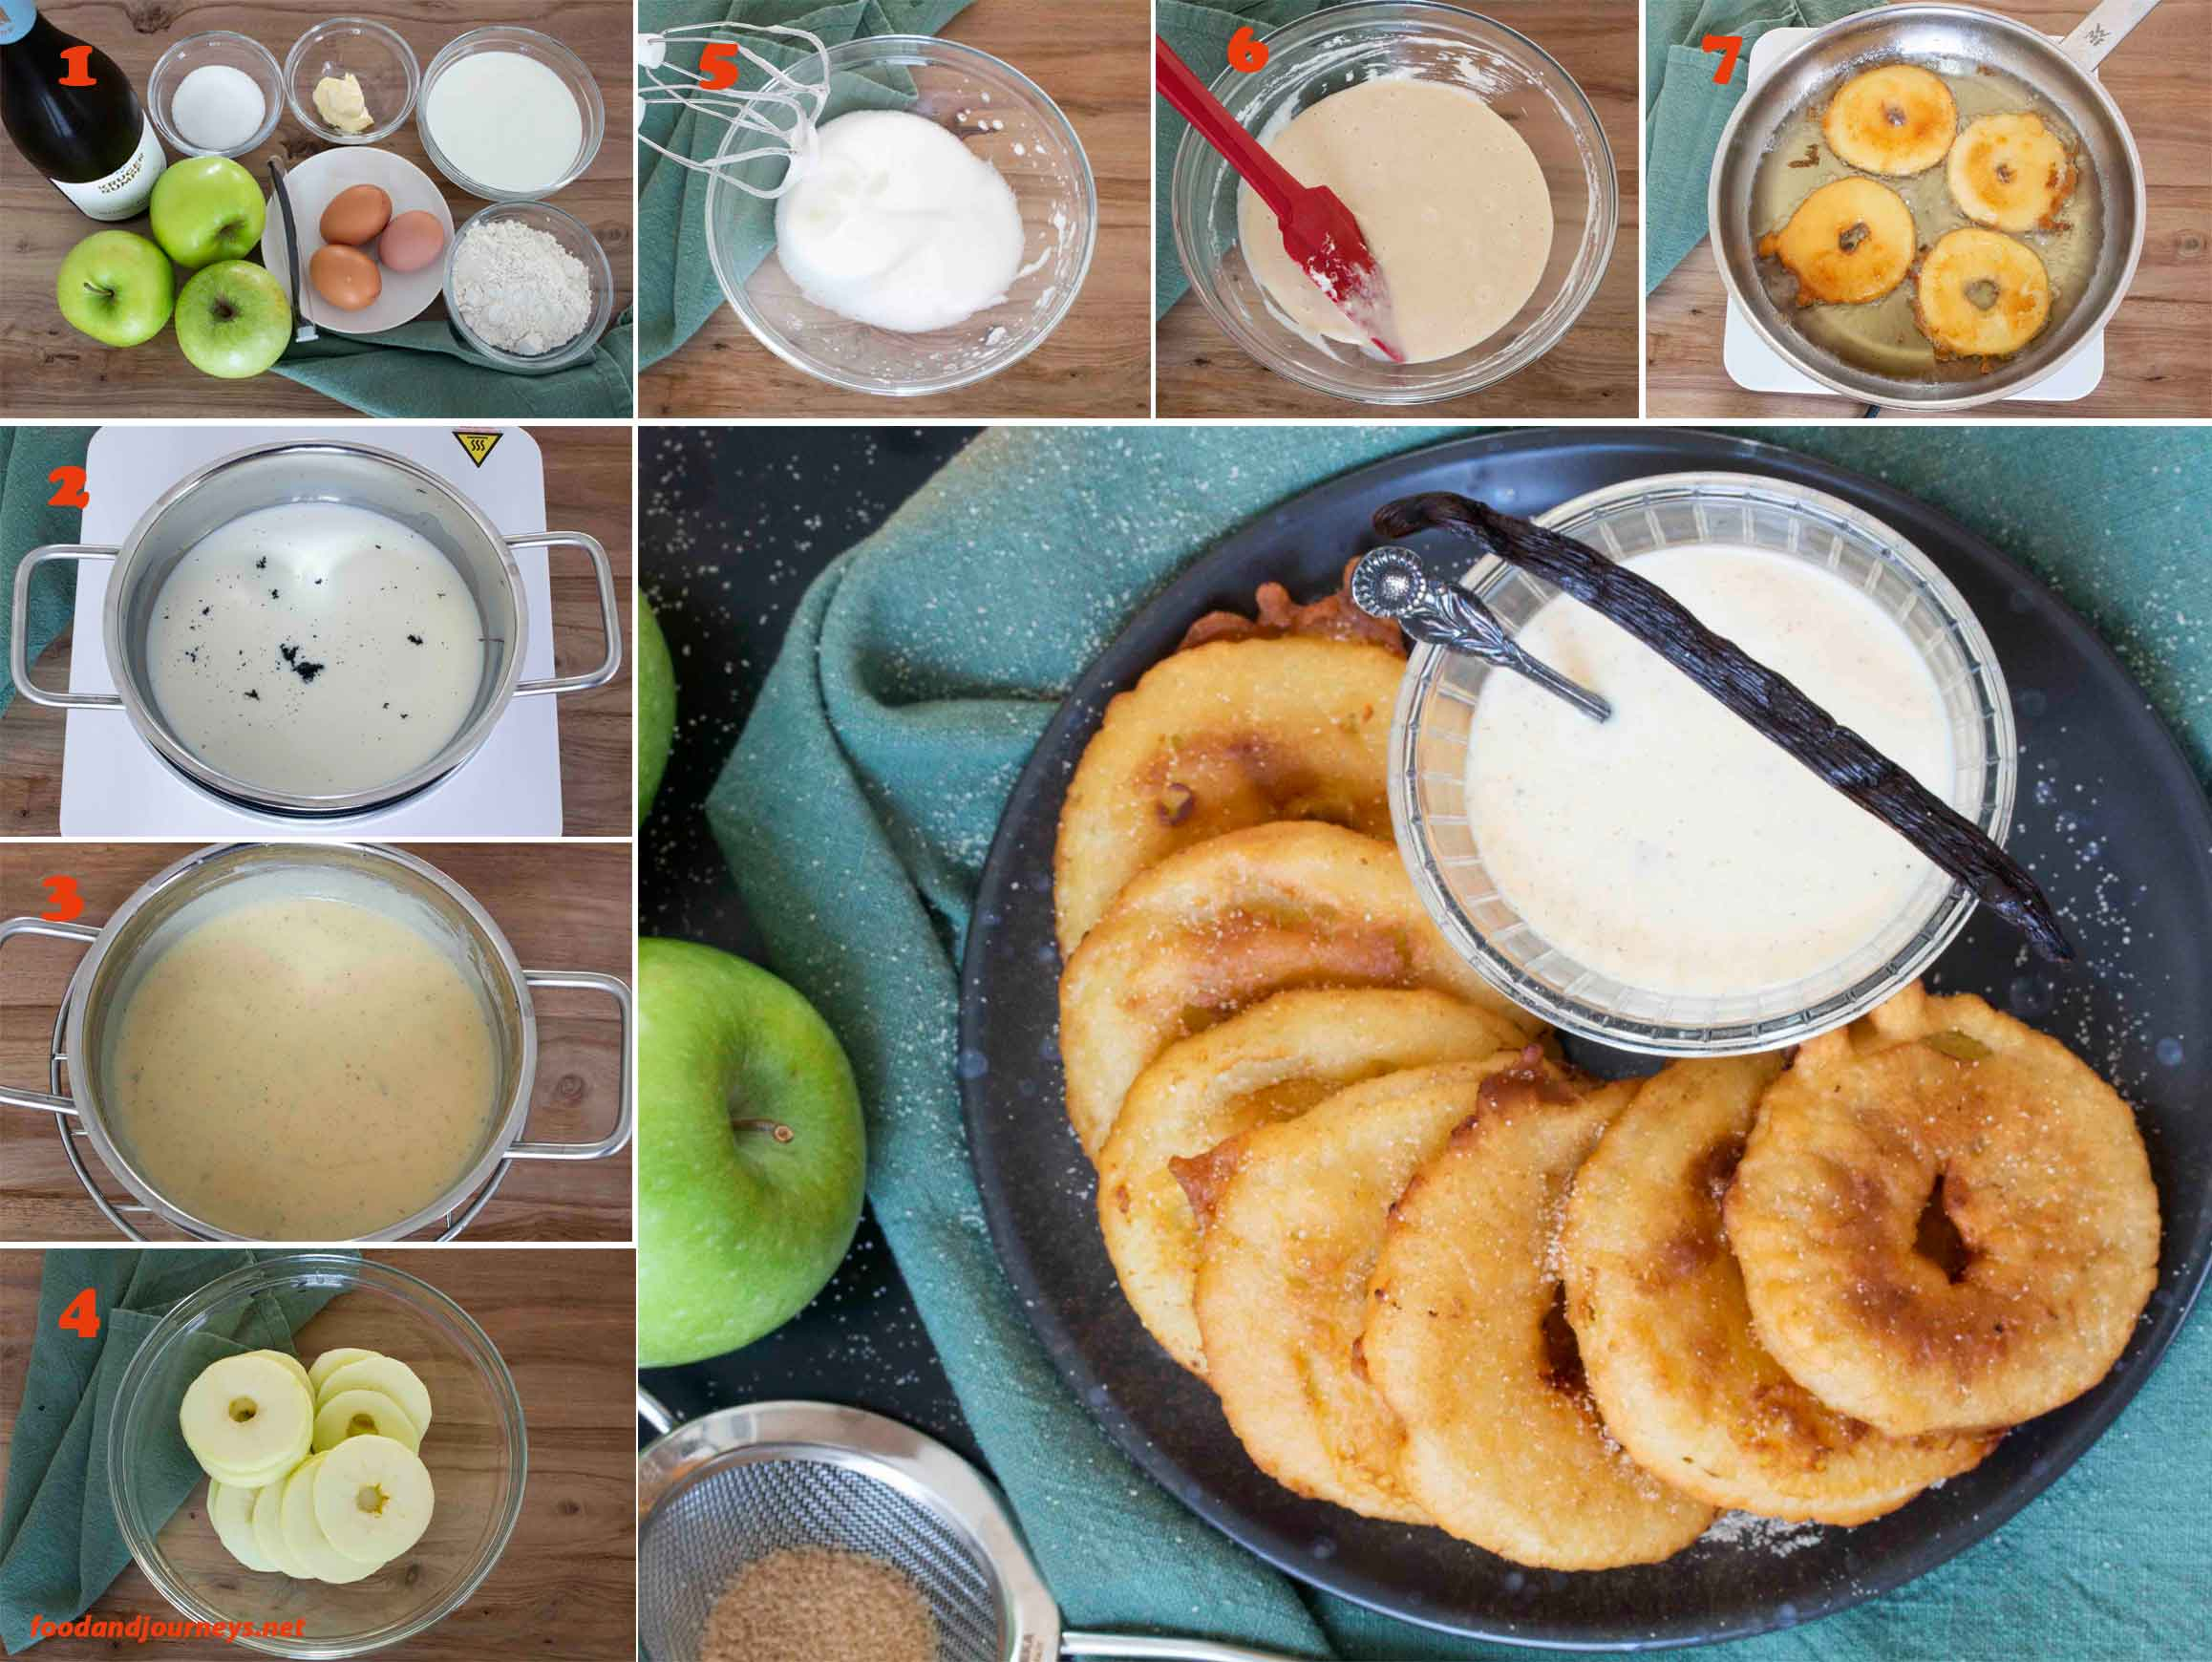 A collage of images showing the step by step process on how to make German Apple Fritters with Vanilla Sauce.